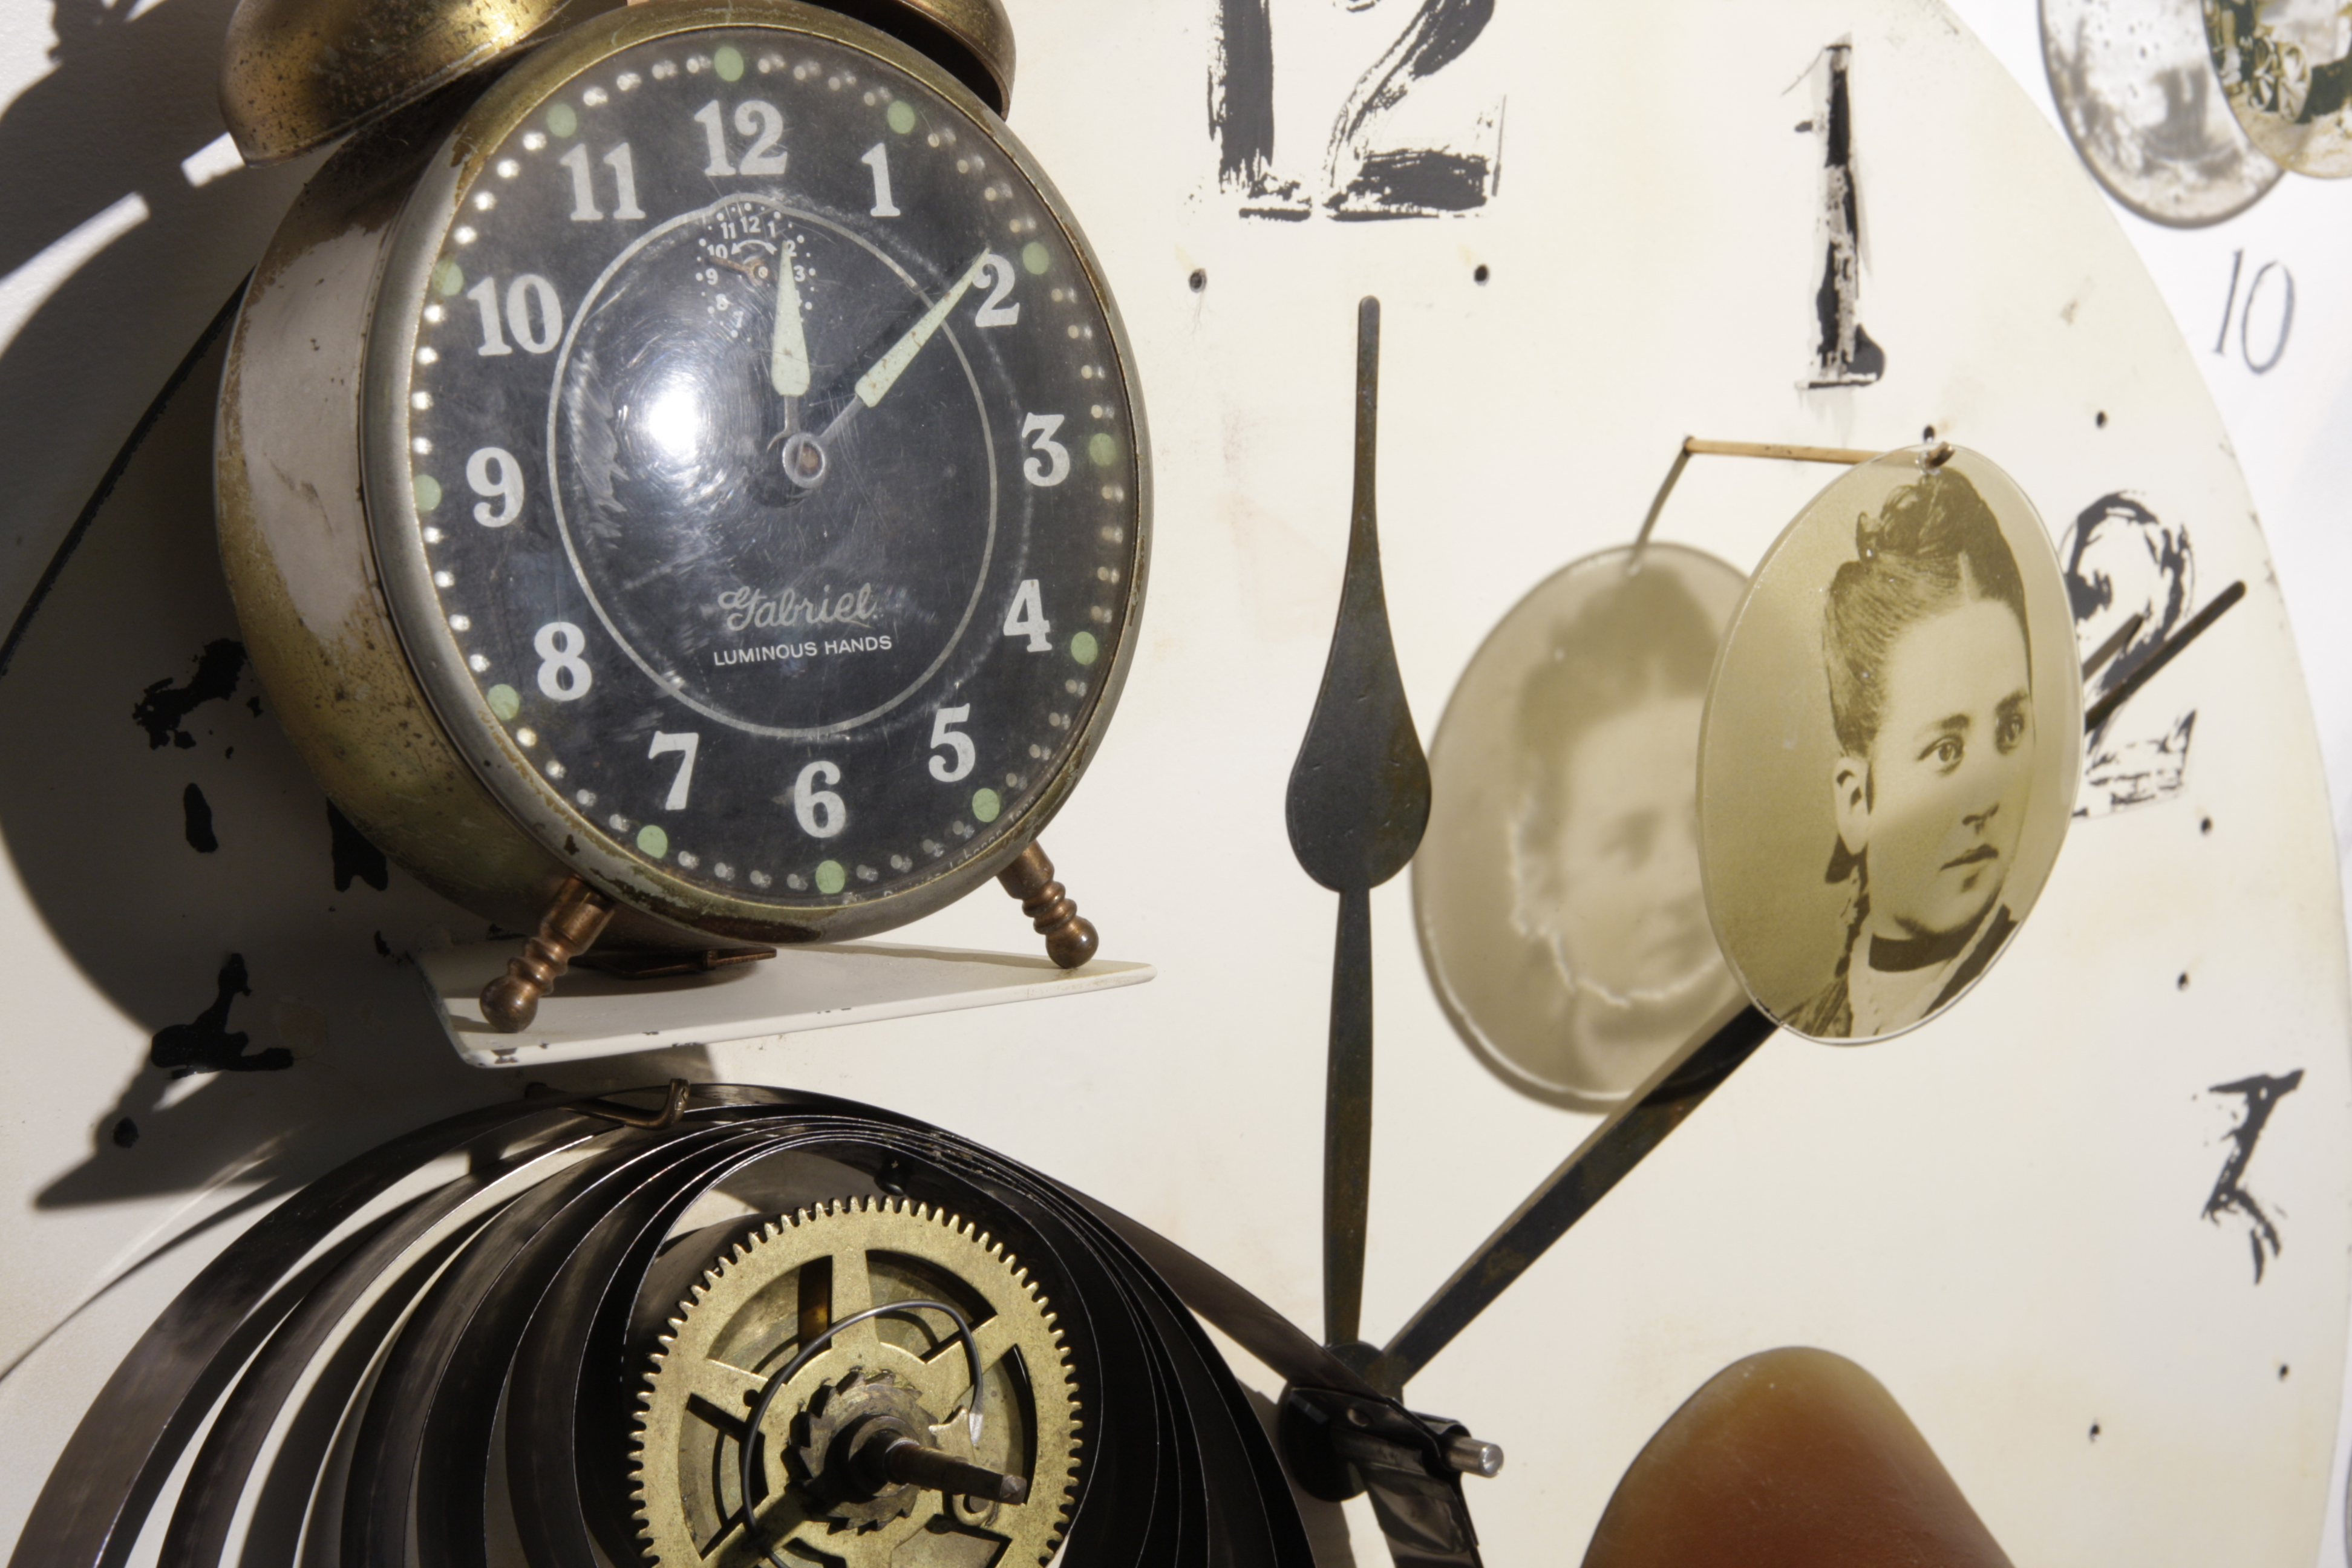 Detail of 3D wall piece painting with 16 photos of people on glass, glass hands holding gears, and clock parts.